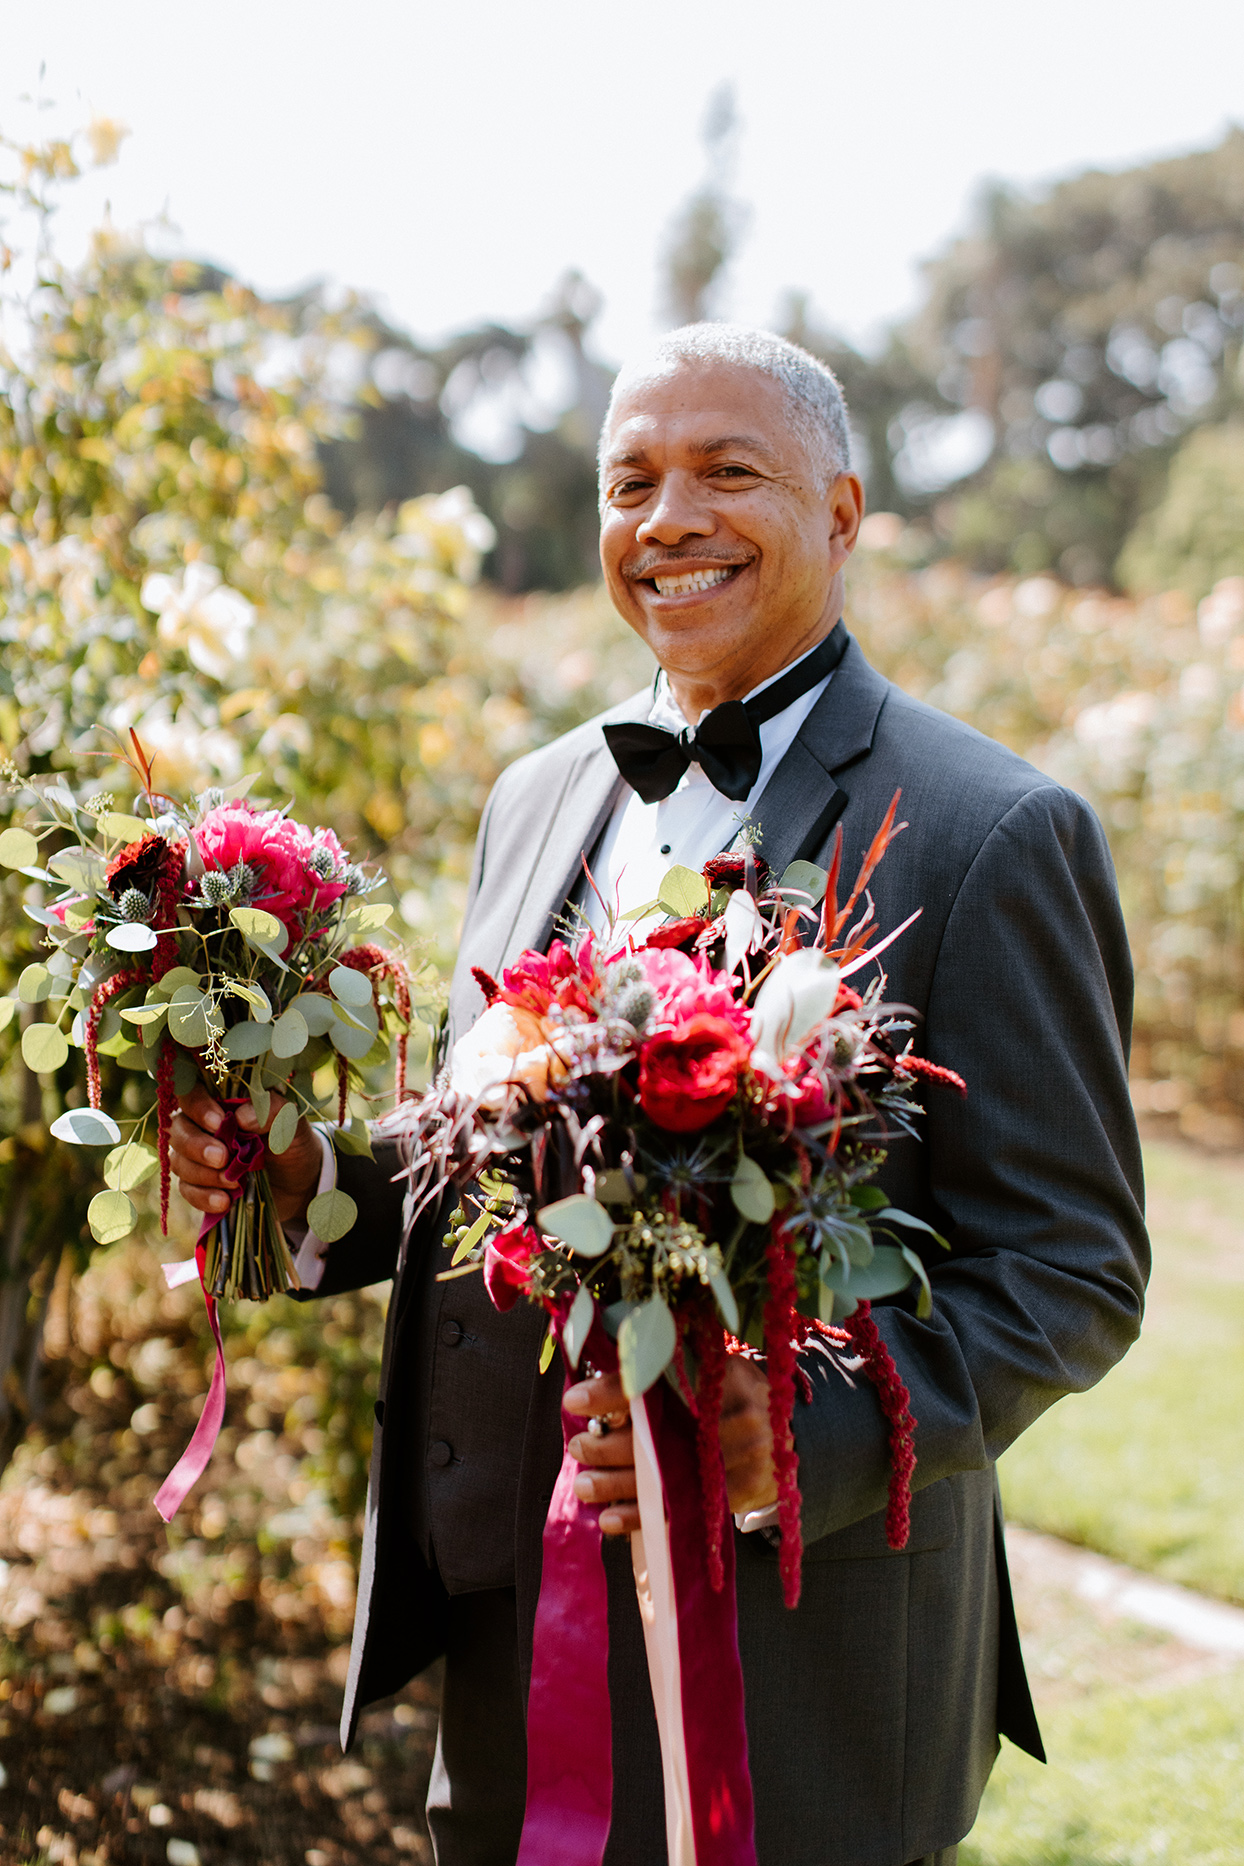 father of the bride holding jewel toned wedding bouquets